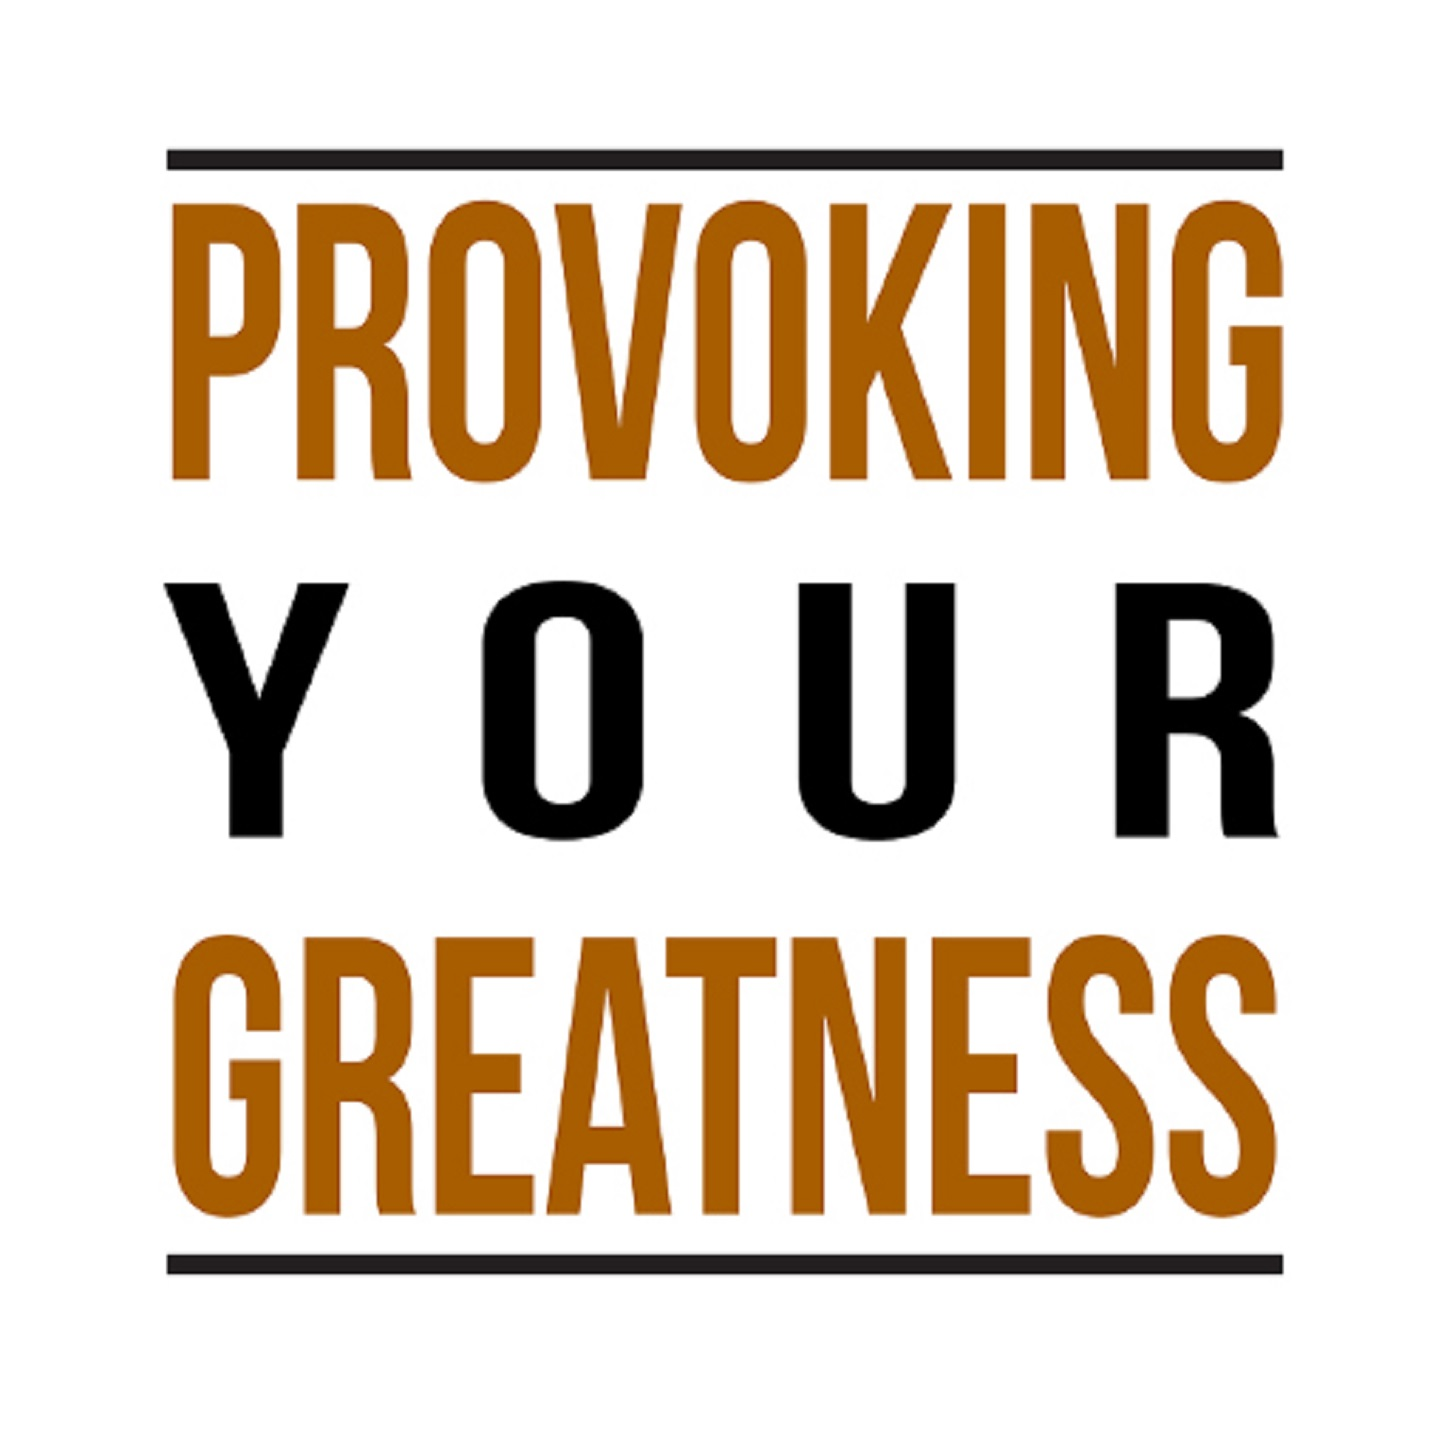 Provoking Your Greatness - Misti Burmeister show art